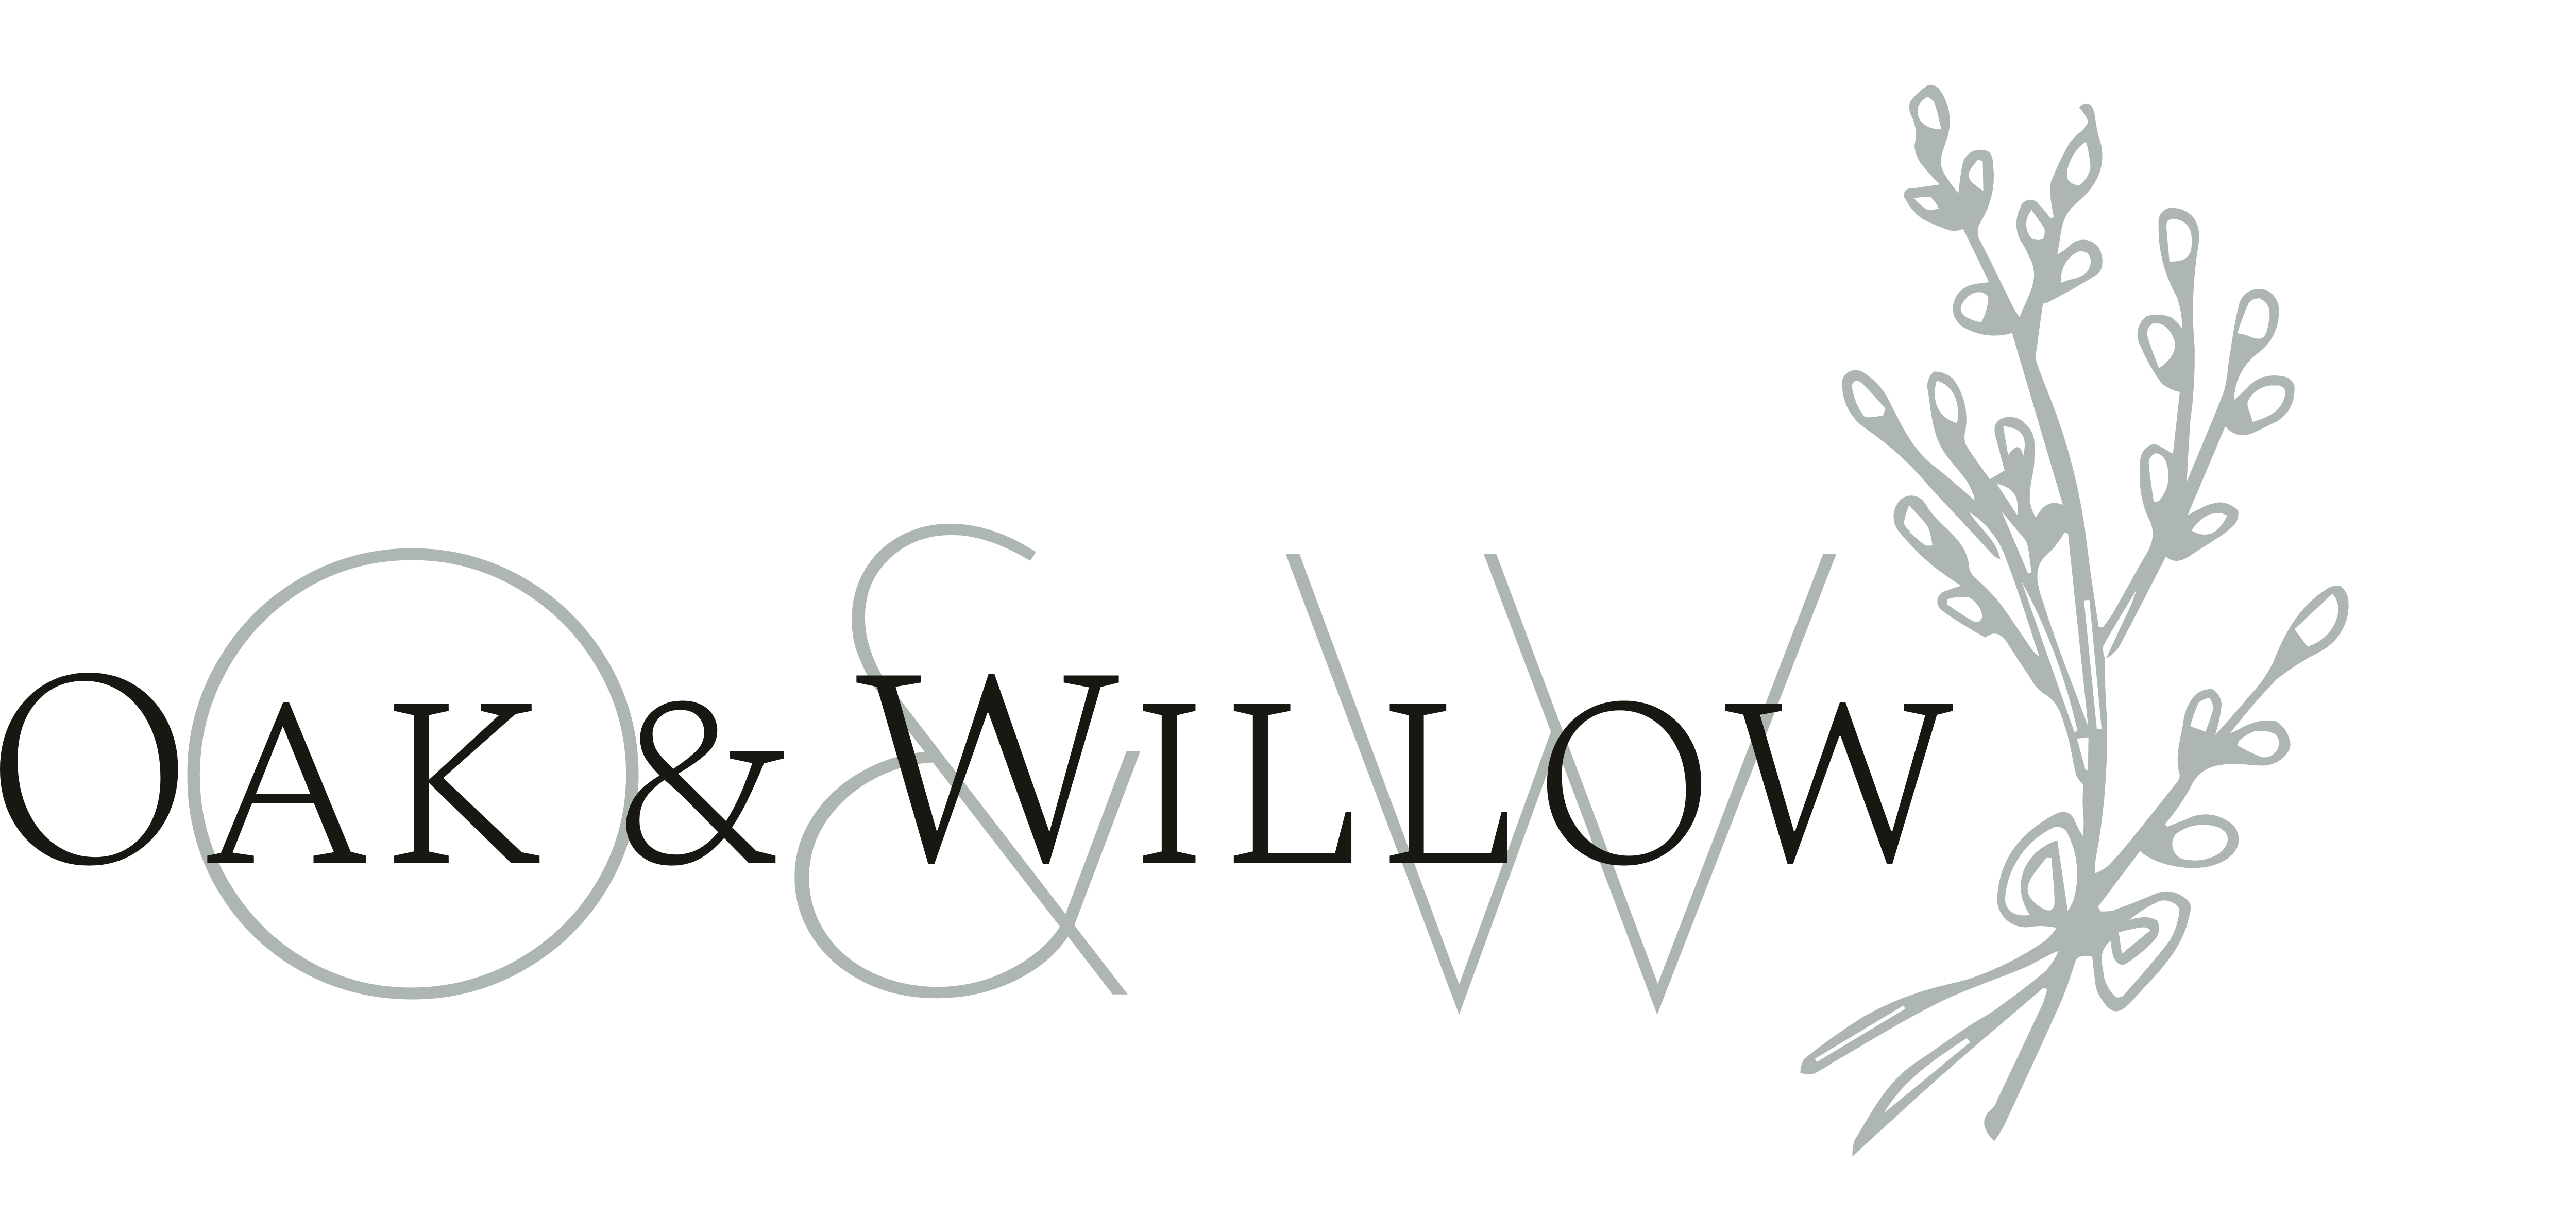 Oak and Willow Florist